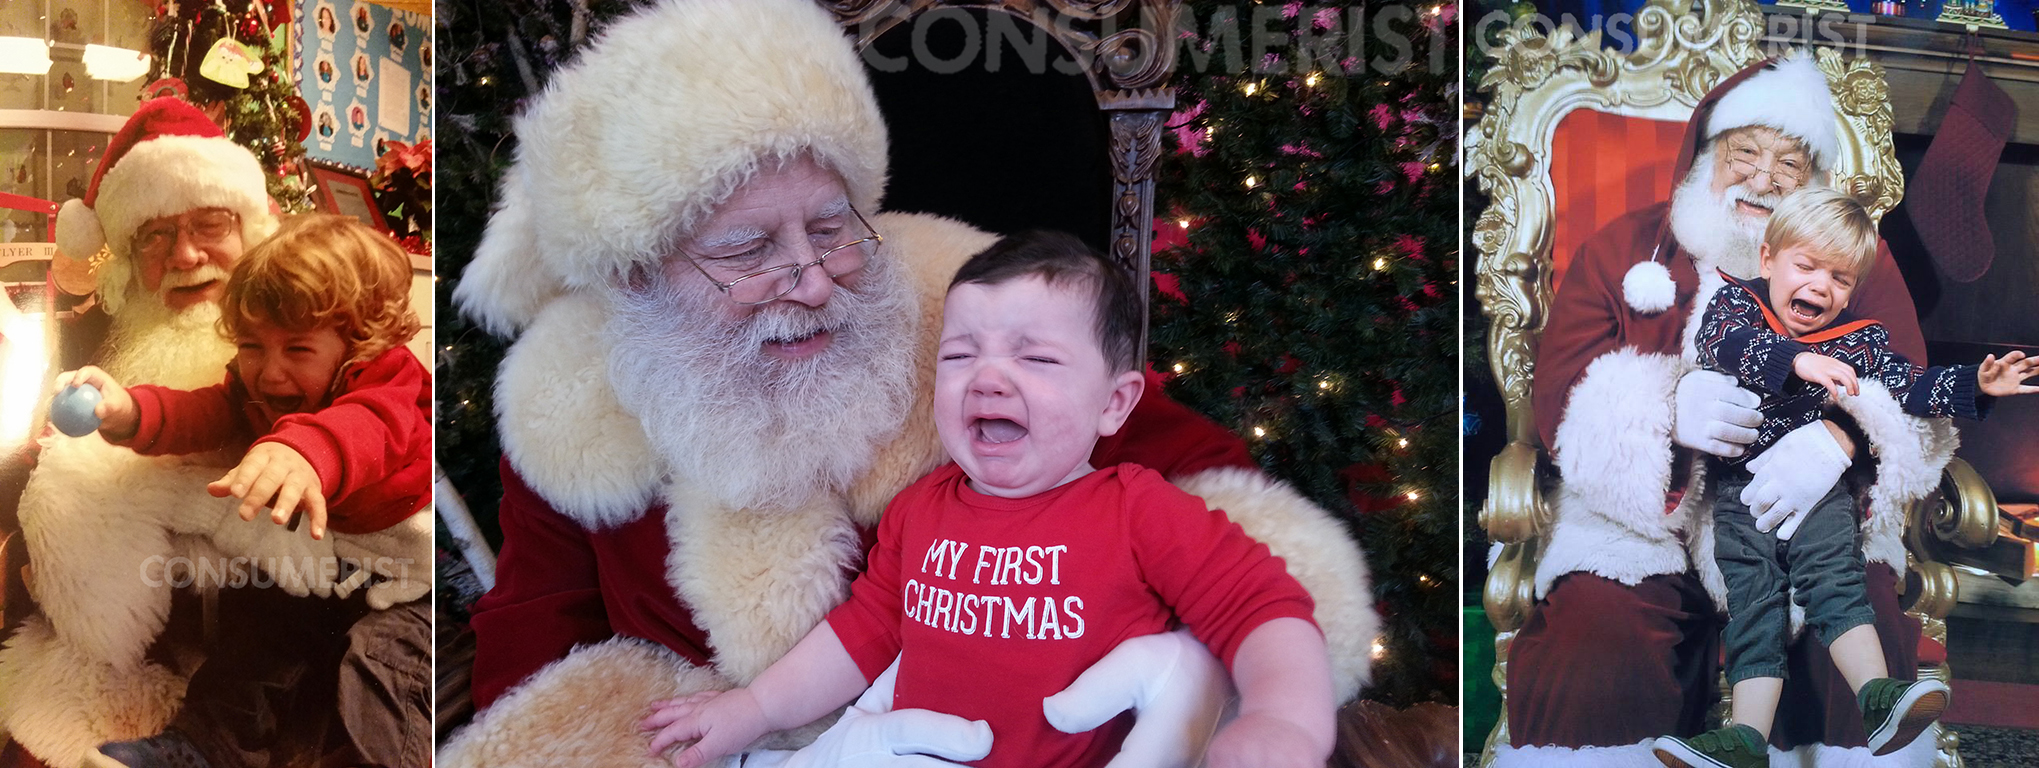 27 Photos Of Kids Who Are Totally Ticked Their Parents Made Them Hang Out With This Weird Santa Guy